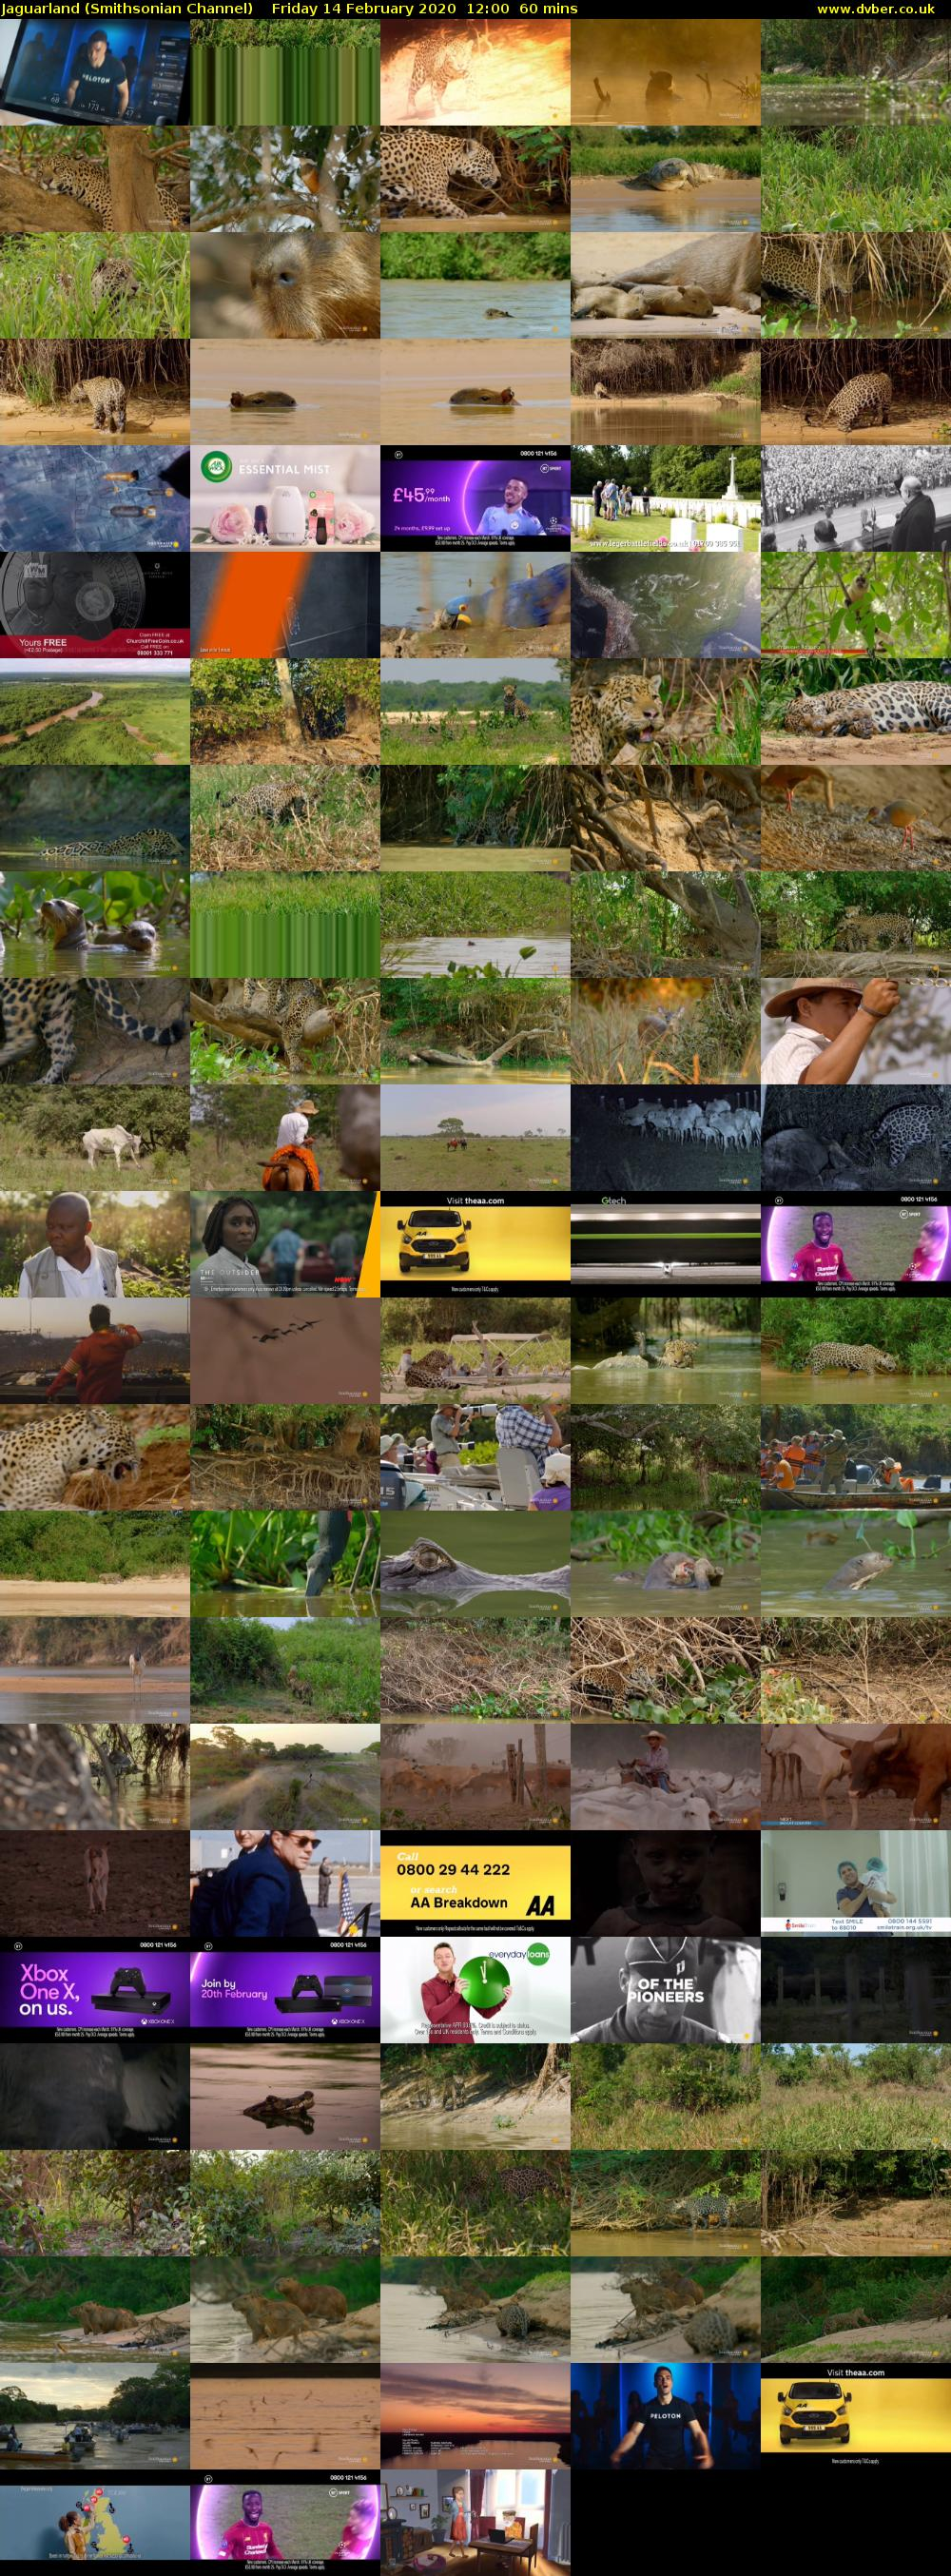 Jaguarland (Smithsonian Channel) Friday 14 February 2020 12:00 - 13:00